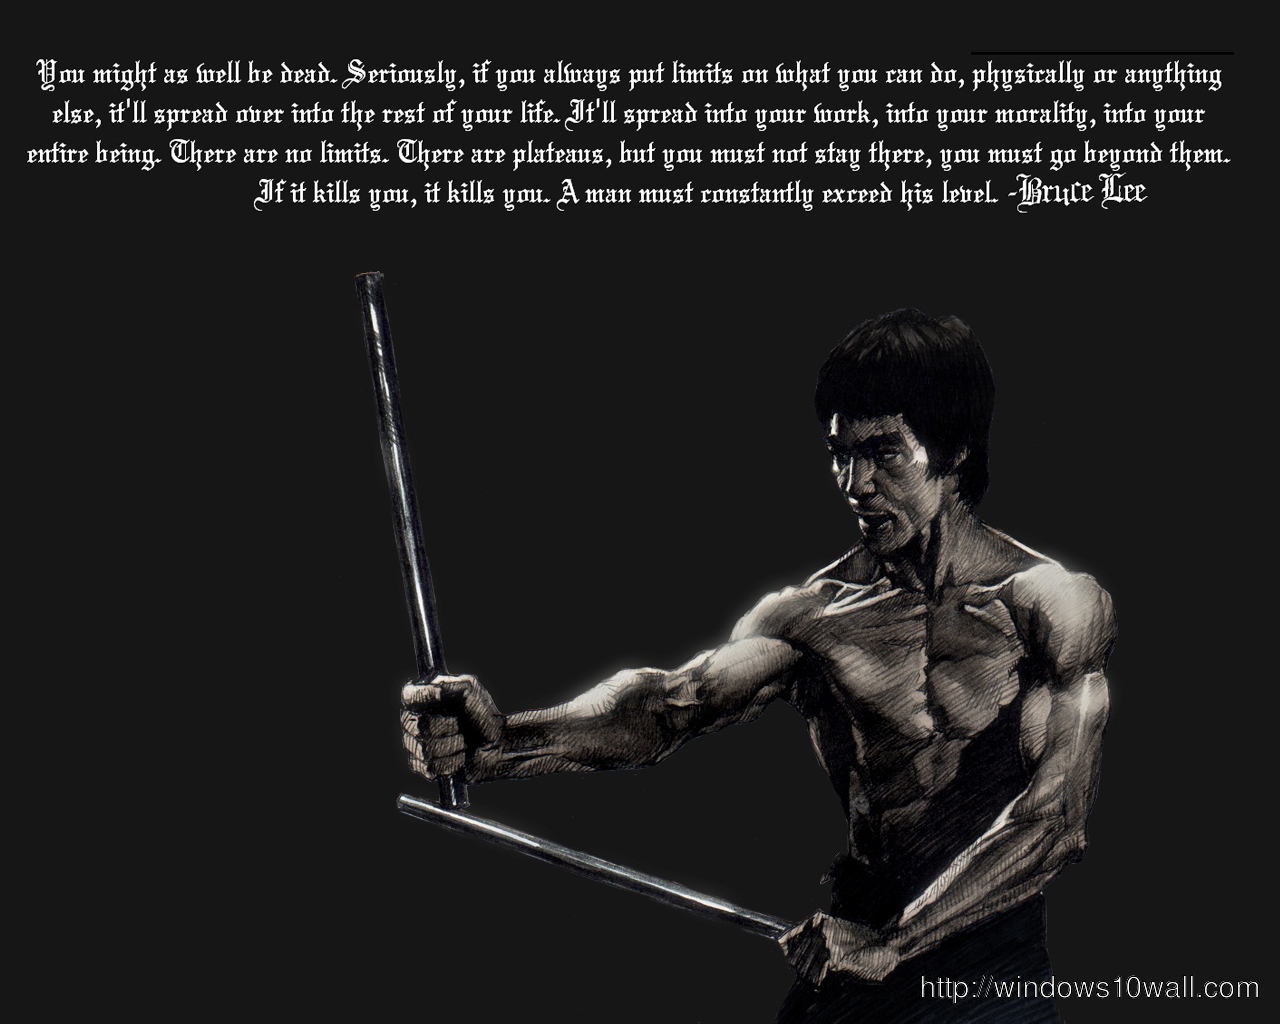 Alone Boy Hd Wallpaper With Quotes Unique Bruce Lee Quotes New Hd Wallpaper Windows 10